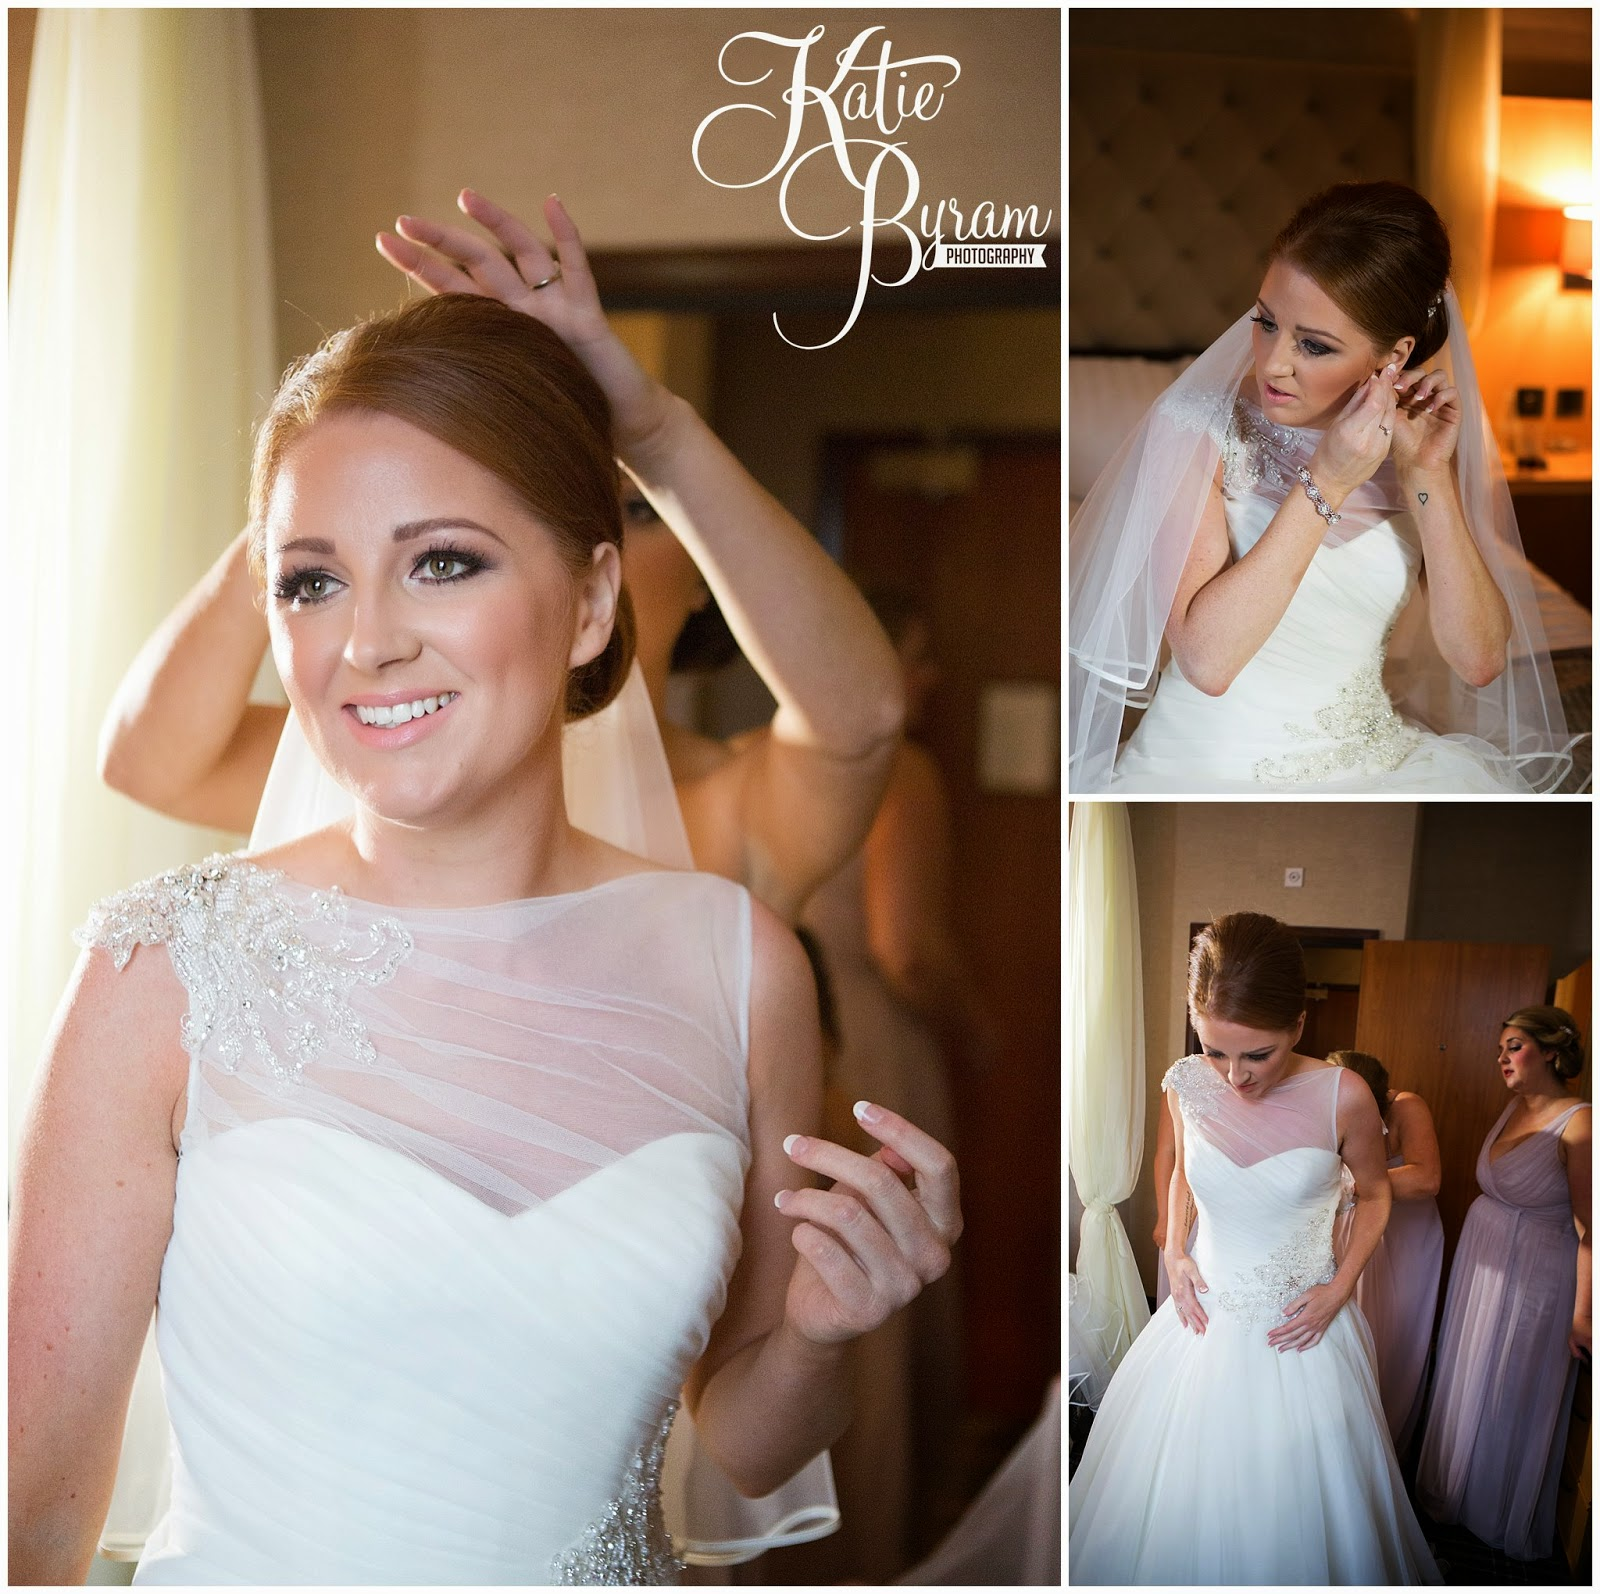 bride getting ready, newcastle city centre wedding, the vermont hotel,vermont weddings, newcastle wedding venue, katie byram photography, hotel wedding newcastle, quayside, nighttime wedding photographs